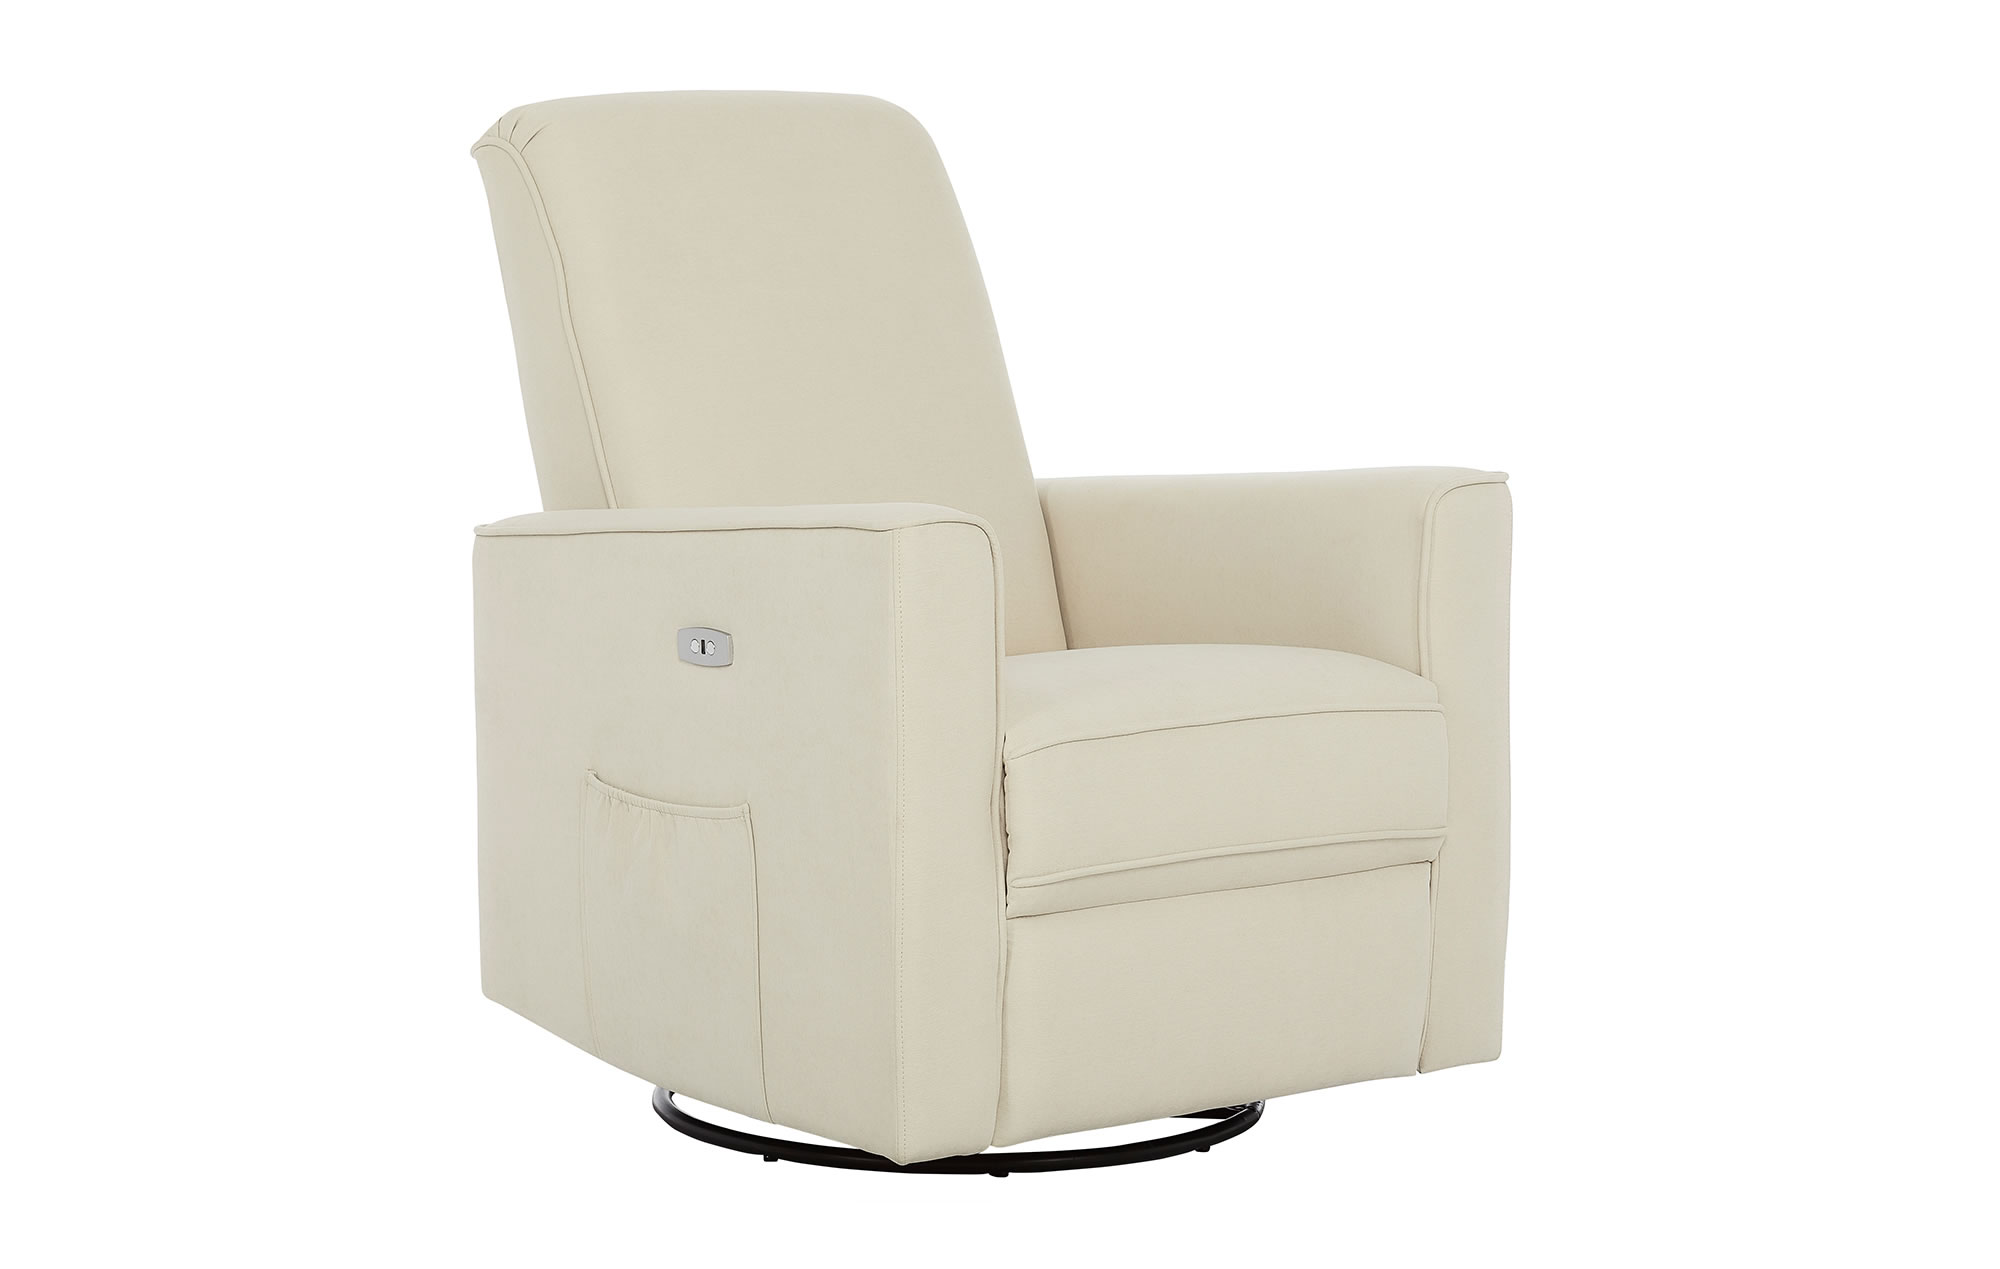 Harlow Deluxe Glider|Recliner|Rocker in Shell